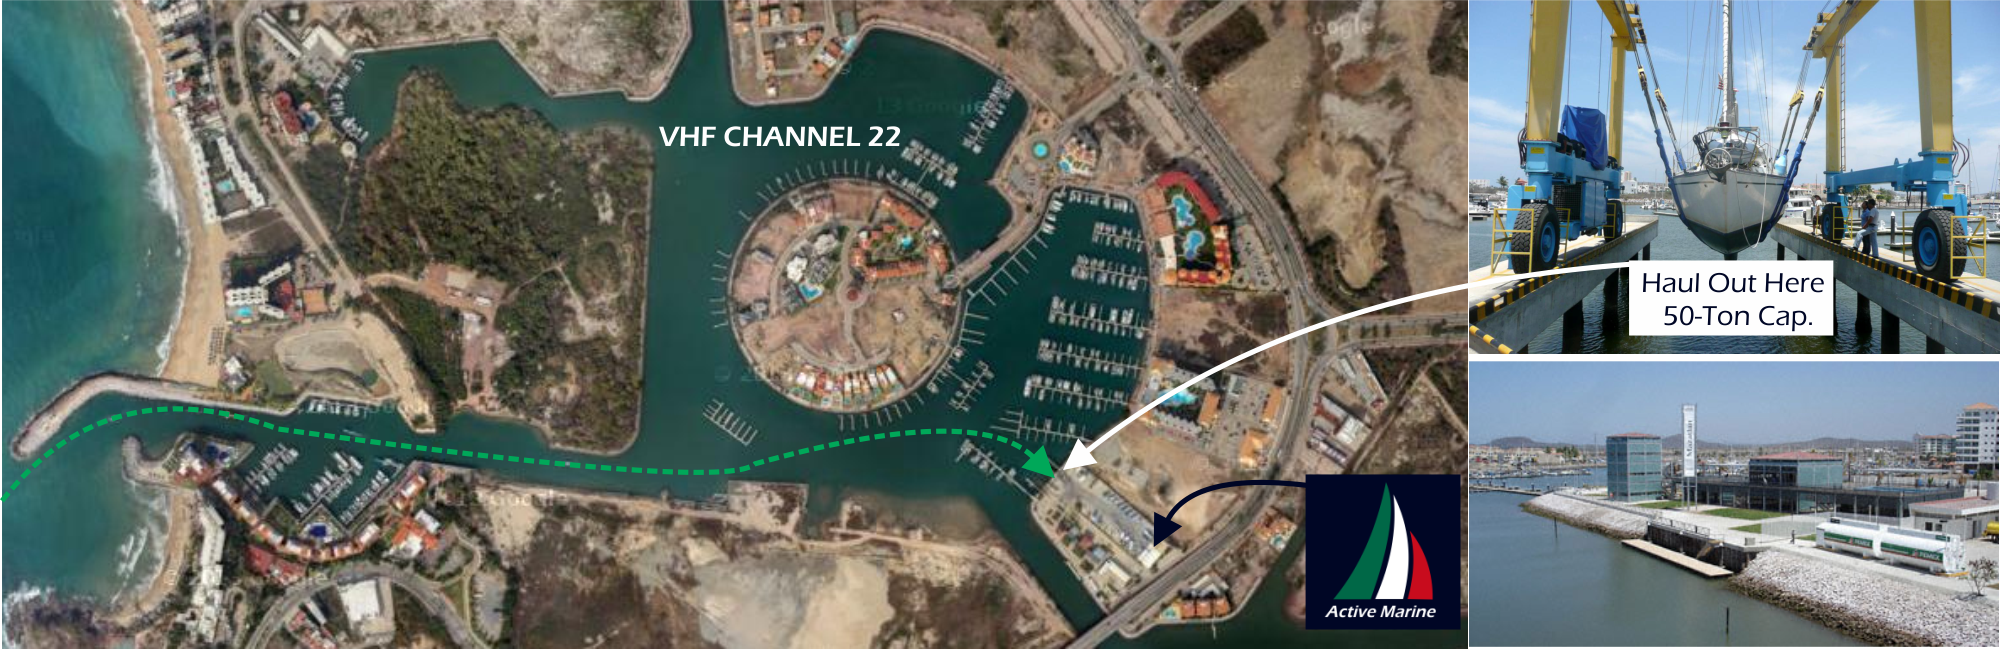 Easy-in and Easy-out with Excellent Amenities Our Fonatur Marina and Boat Yard is somehow both convenient and quiet.